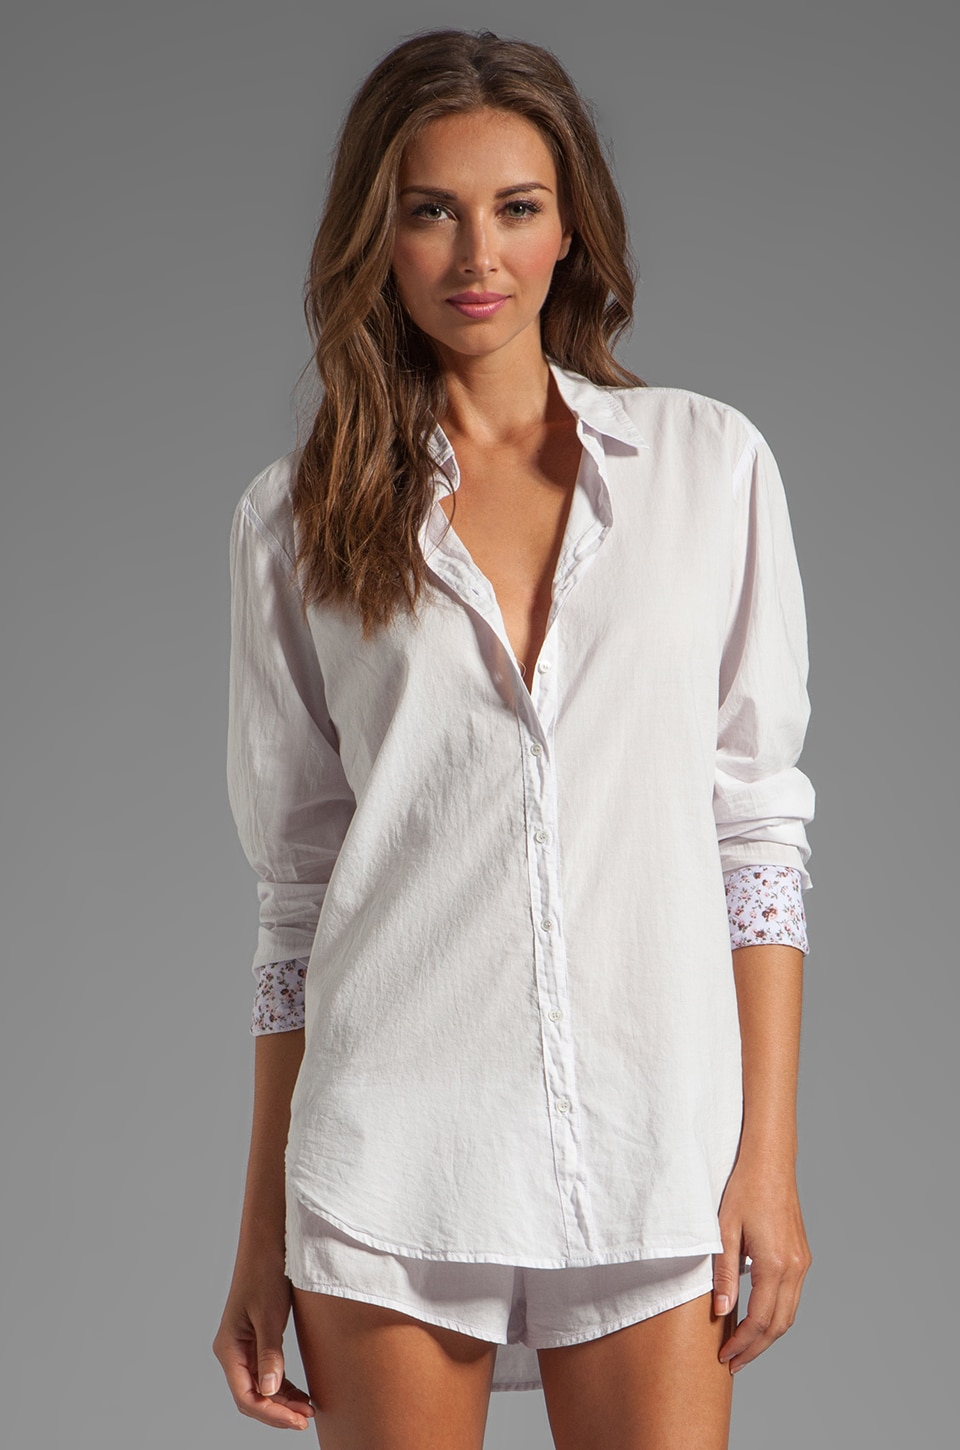 XiRENA Beau Button Up in Lavendar